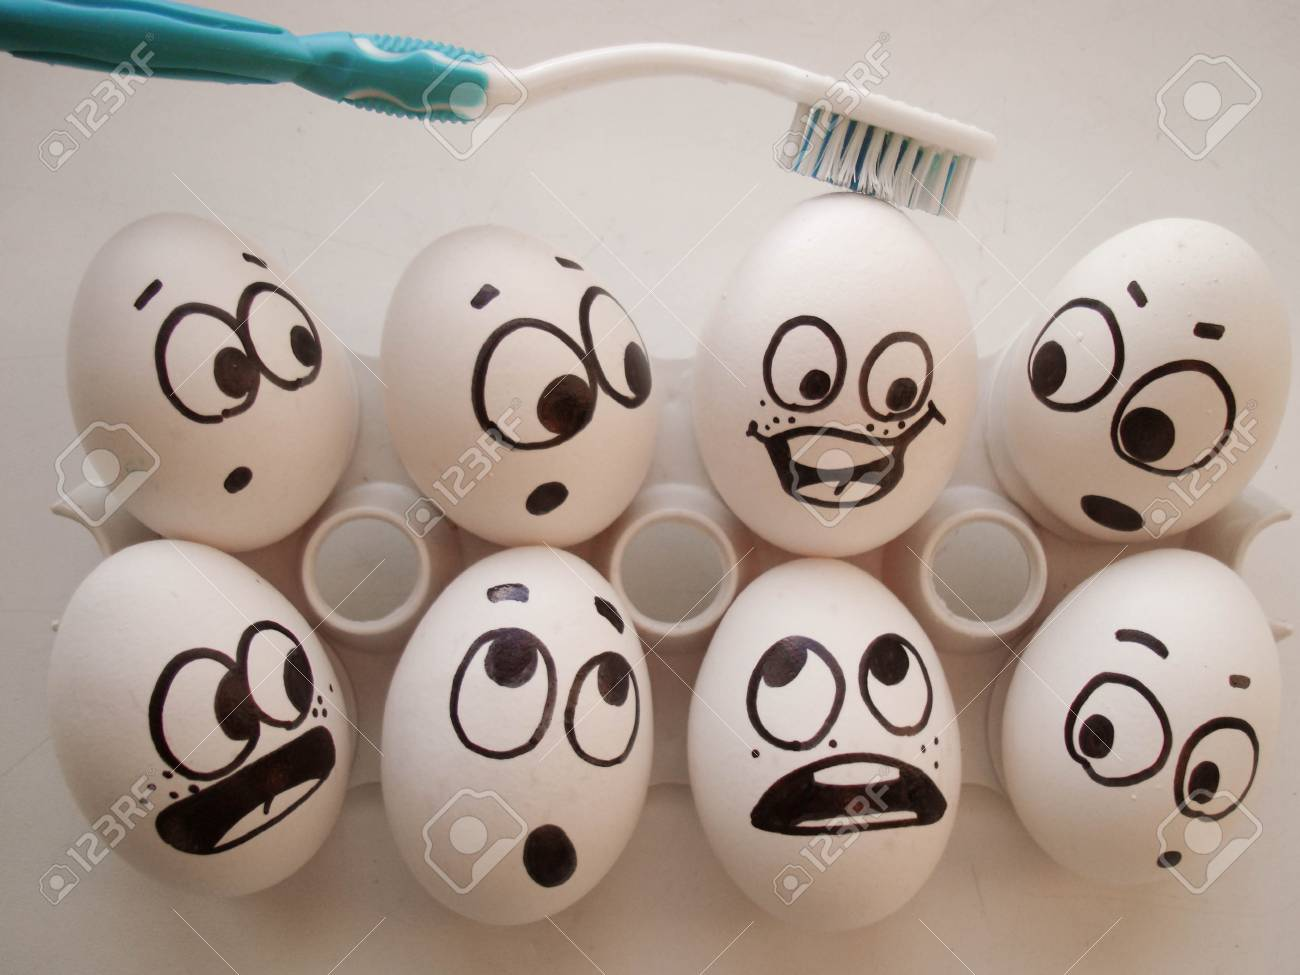 teeth clean concept  funny photo  eggs in a box